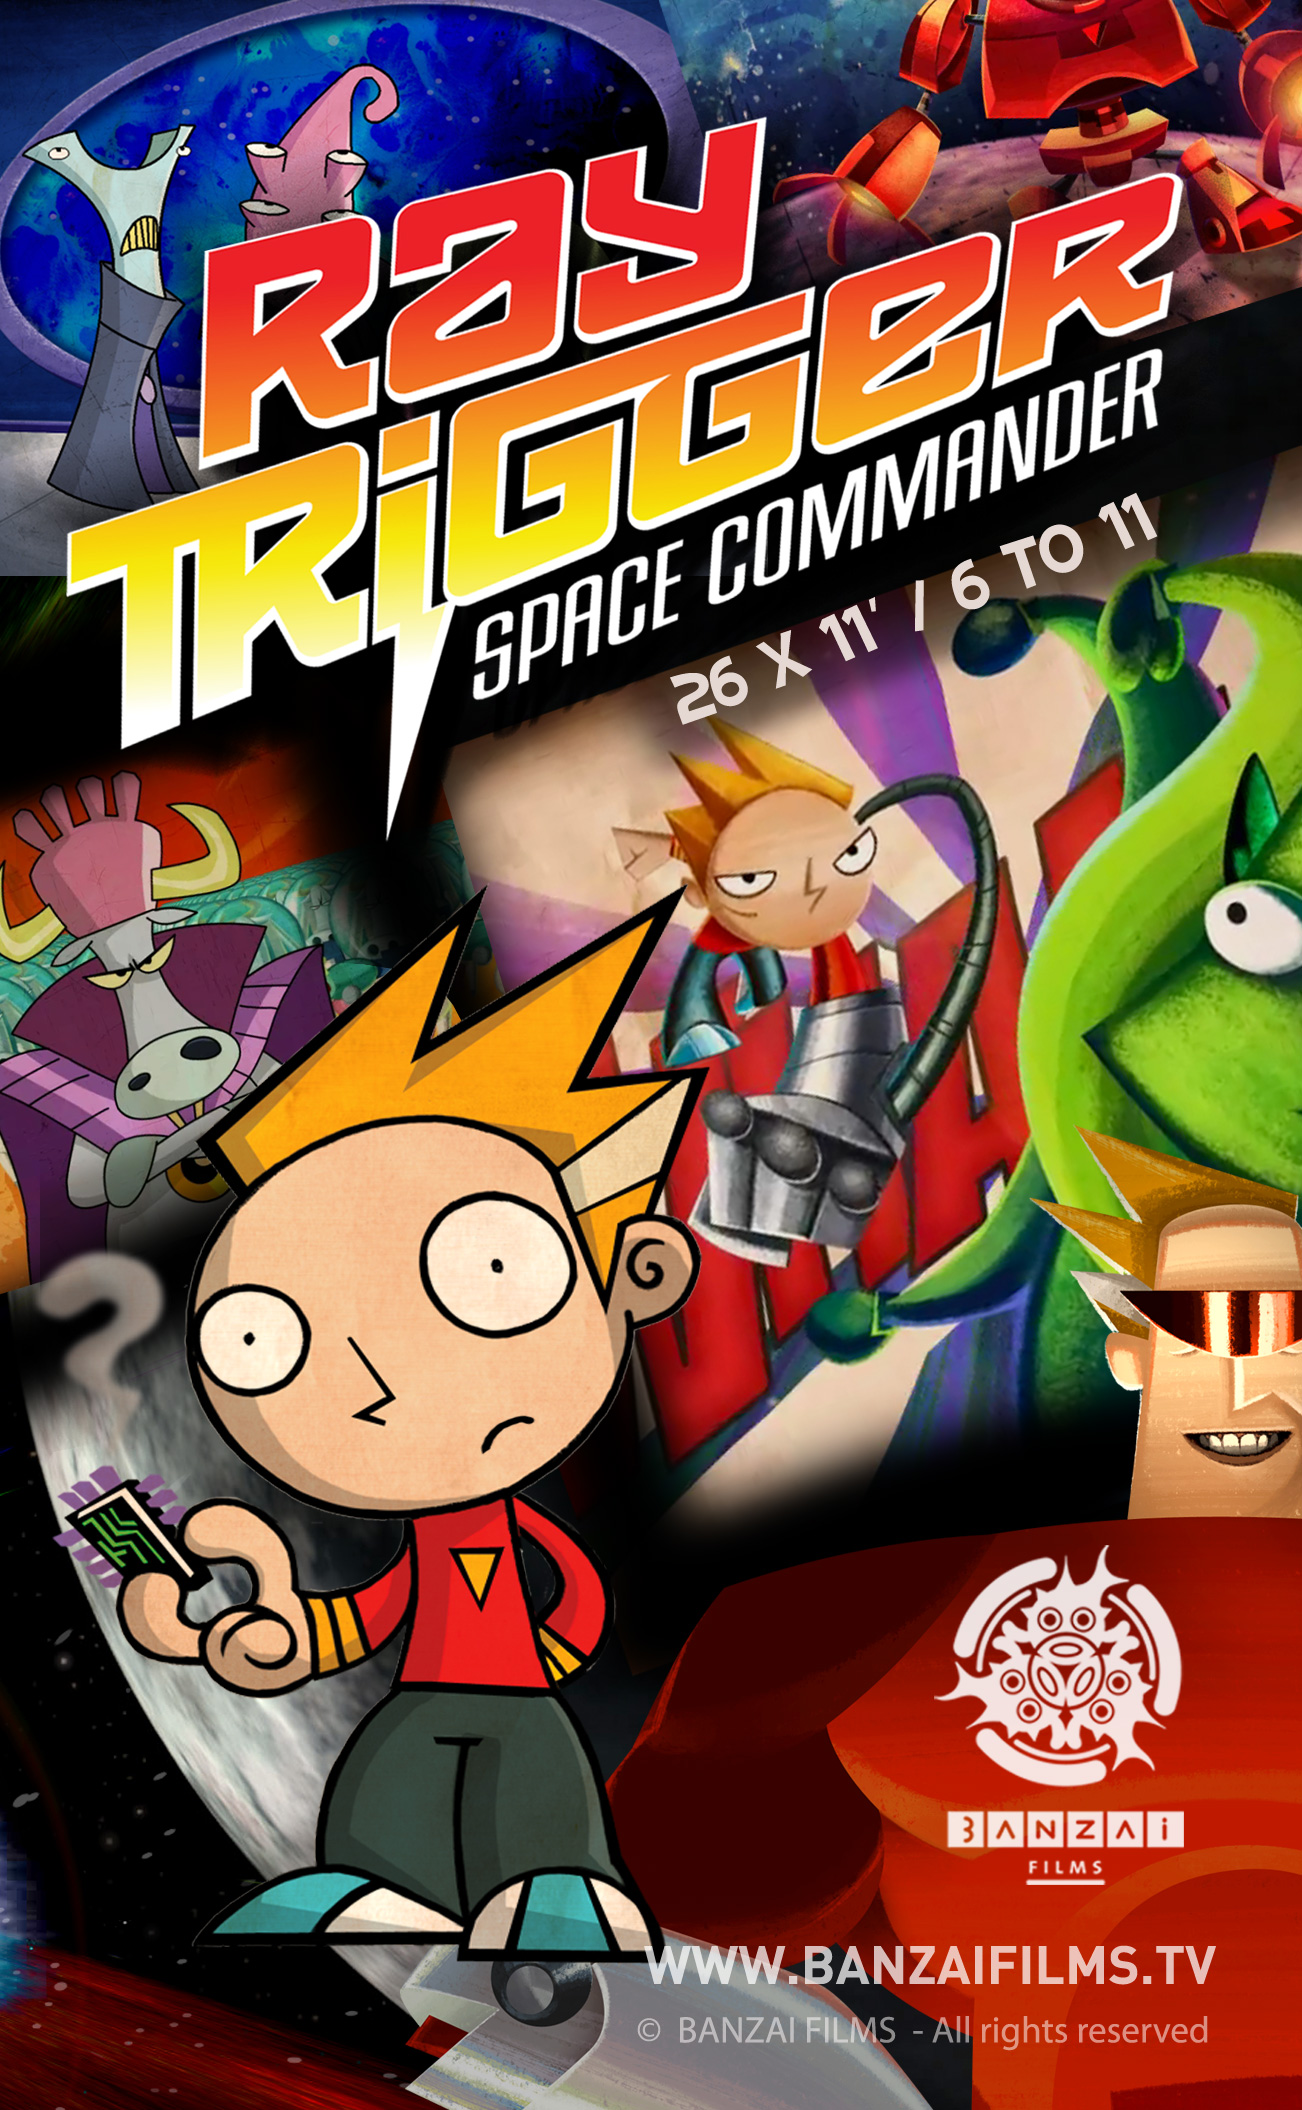 Ray Trigger Space Commander